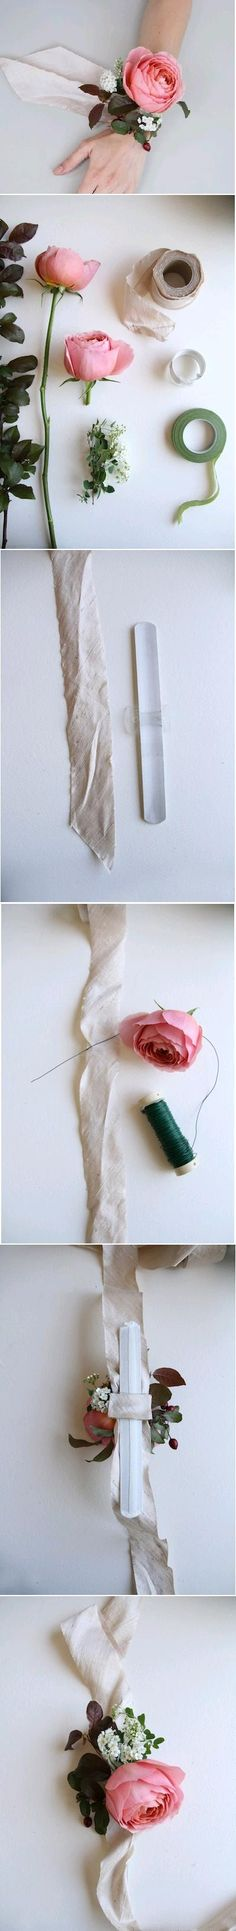 DIY Wrist Flower for prom